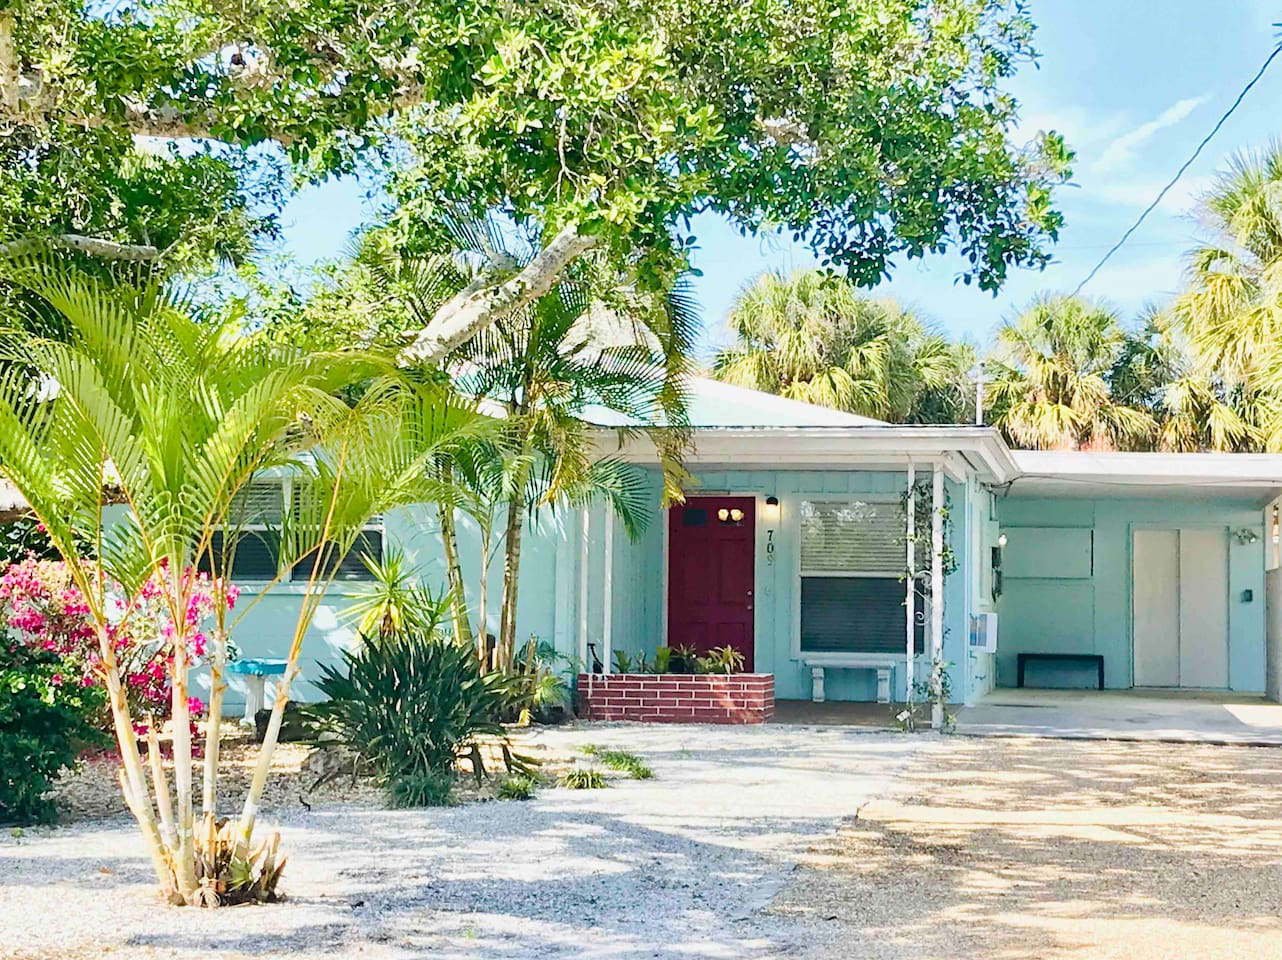 Welcome to our Cozy Cottage on Siesta Key! Classic Florida bungalow on a quiet street about 4 blocks to siesta village.